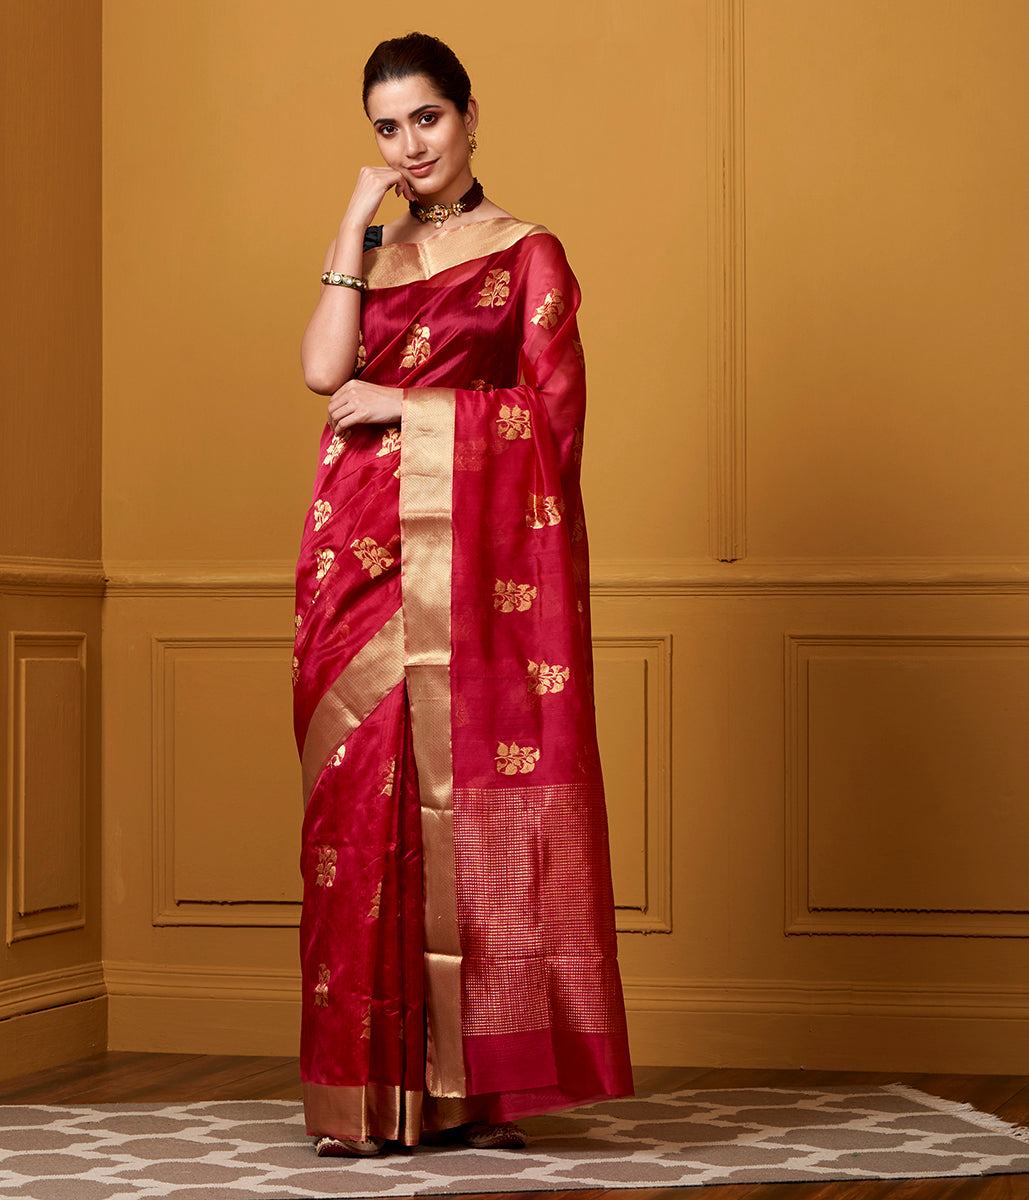 Handwoven Red Floral Boota Saree with Gold Zari Border